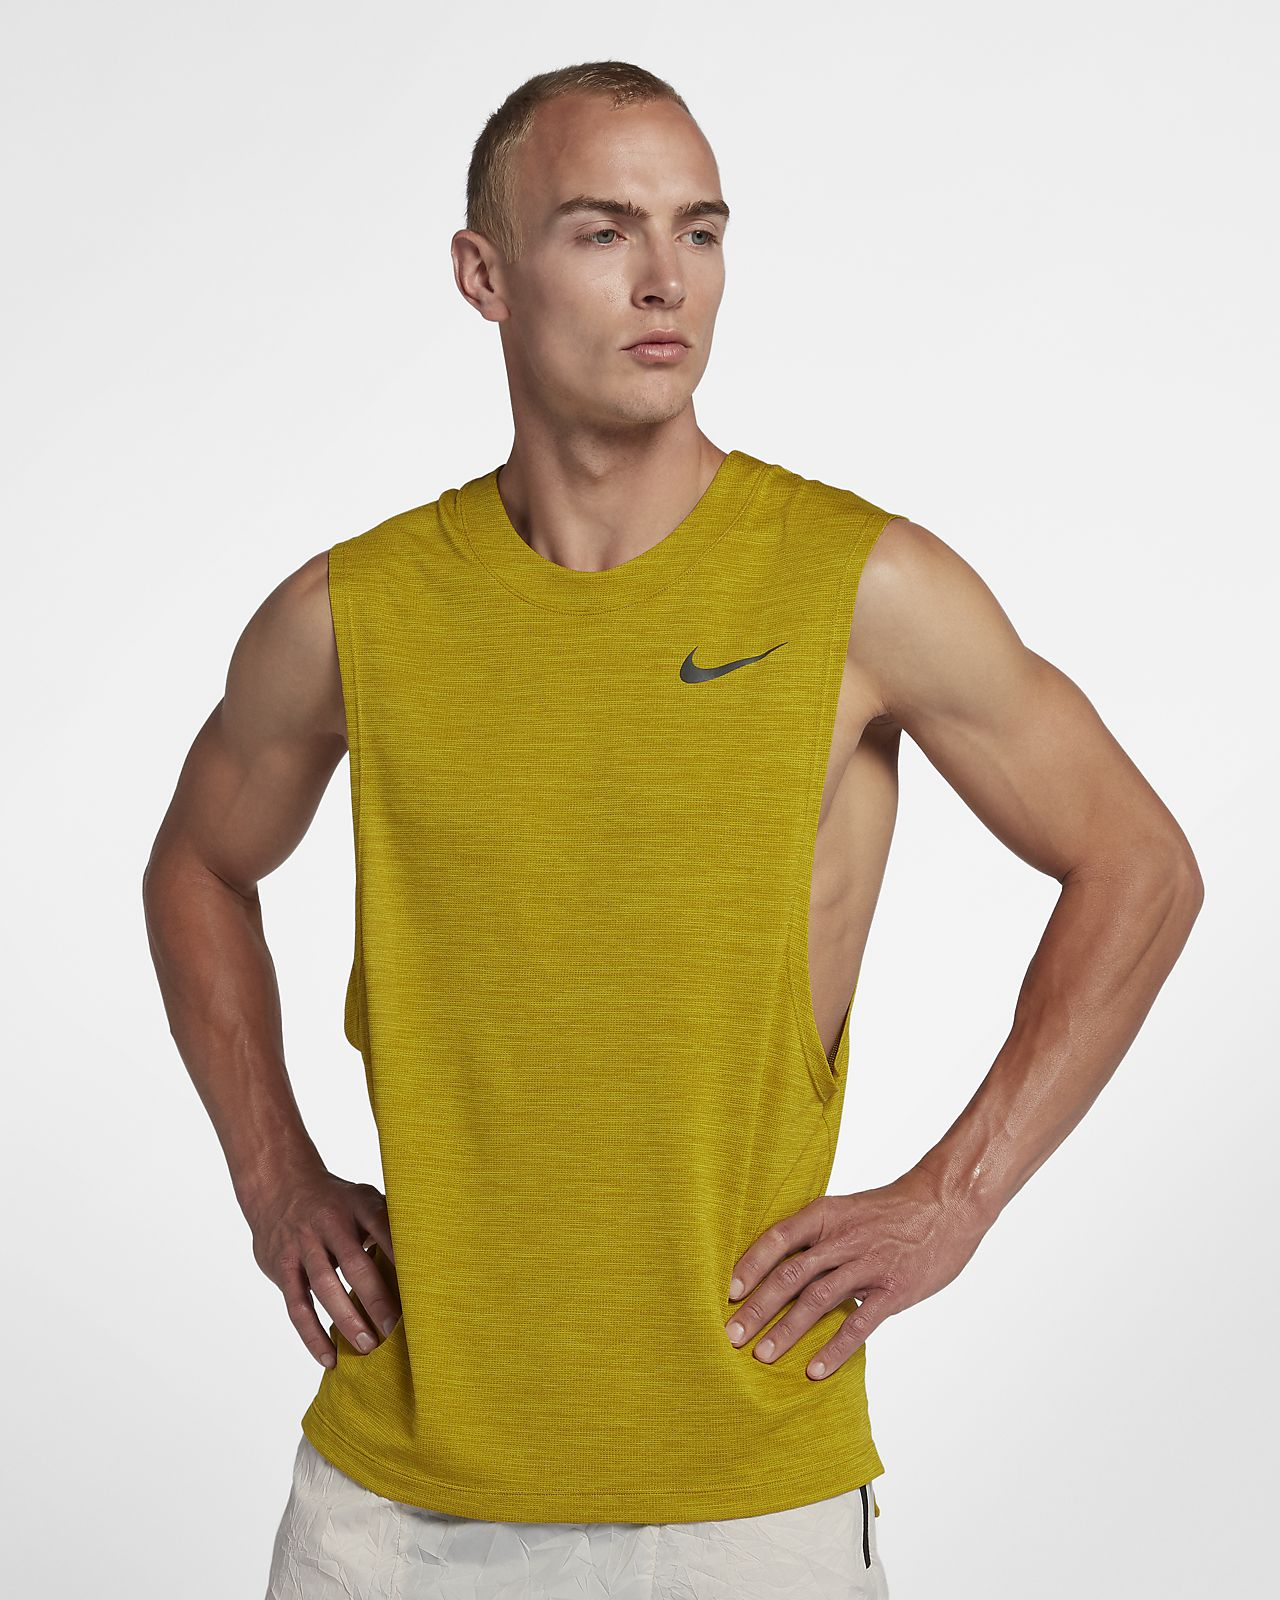 868674345ad3f4 Nike Medalist Run Division Men s Sleeveless Running Top. Nike.com GB